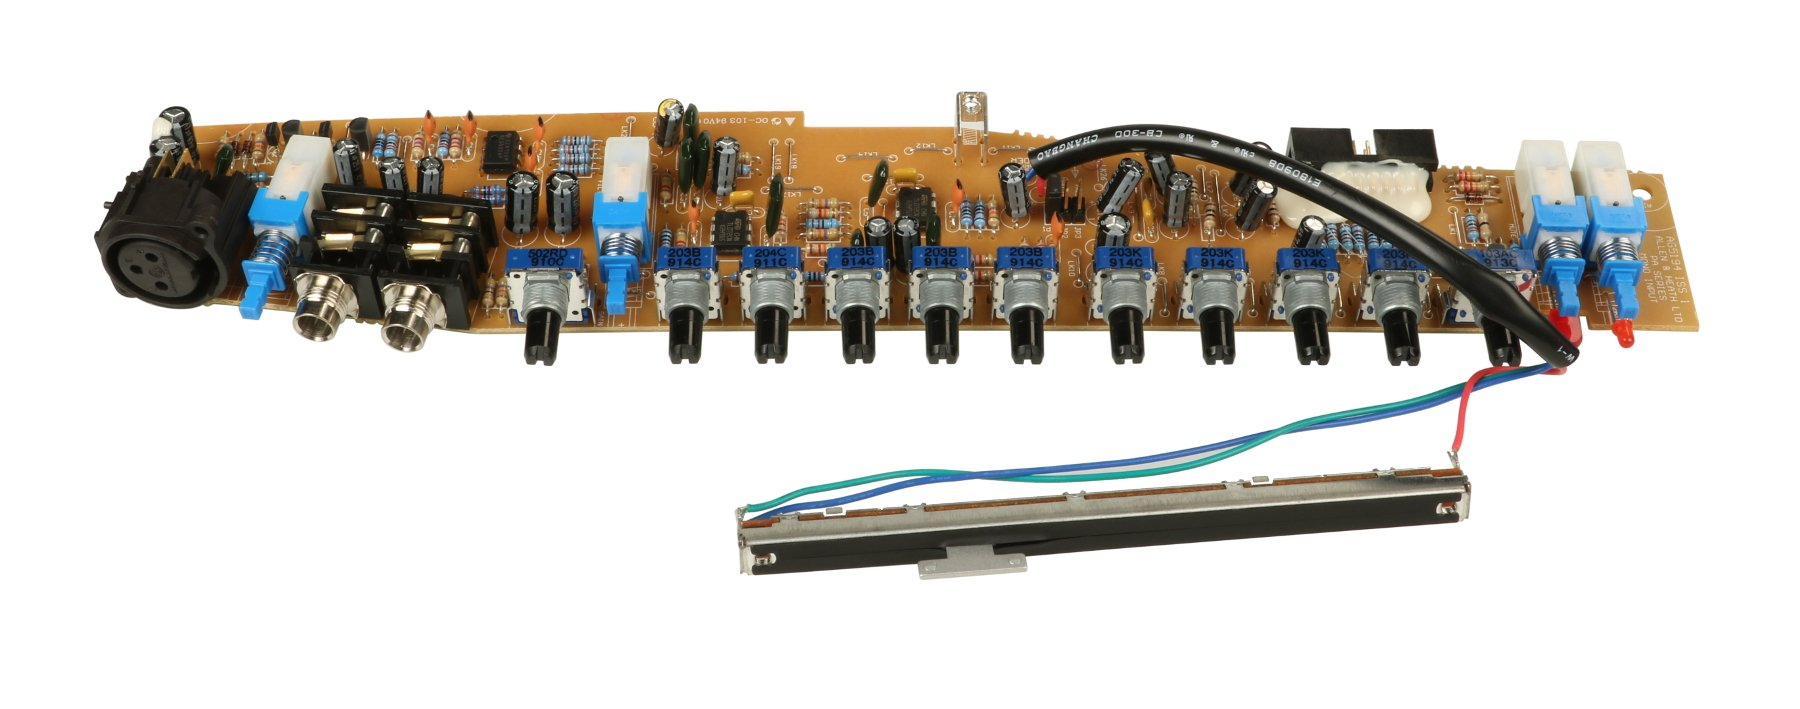 Channel Strip PCB for PA12 and PA28